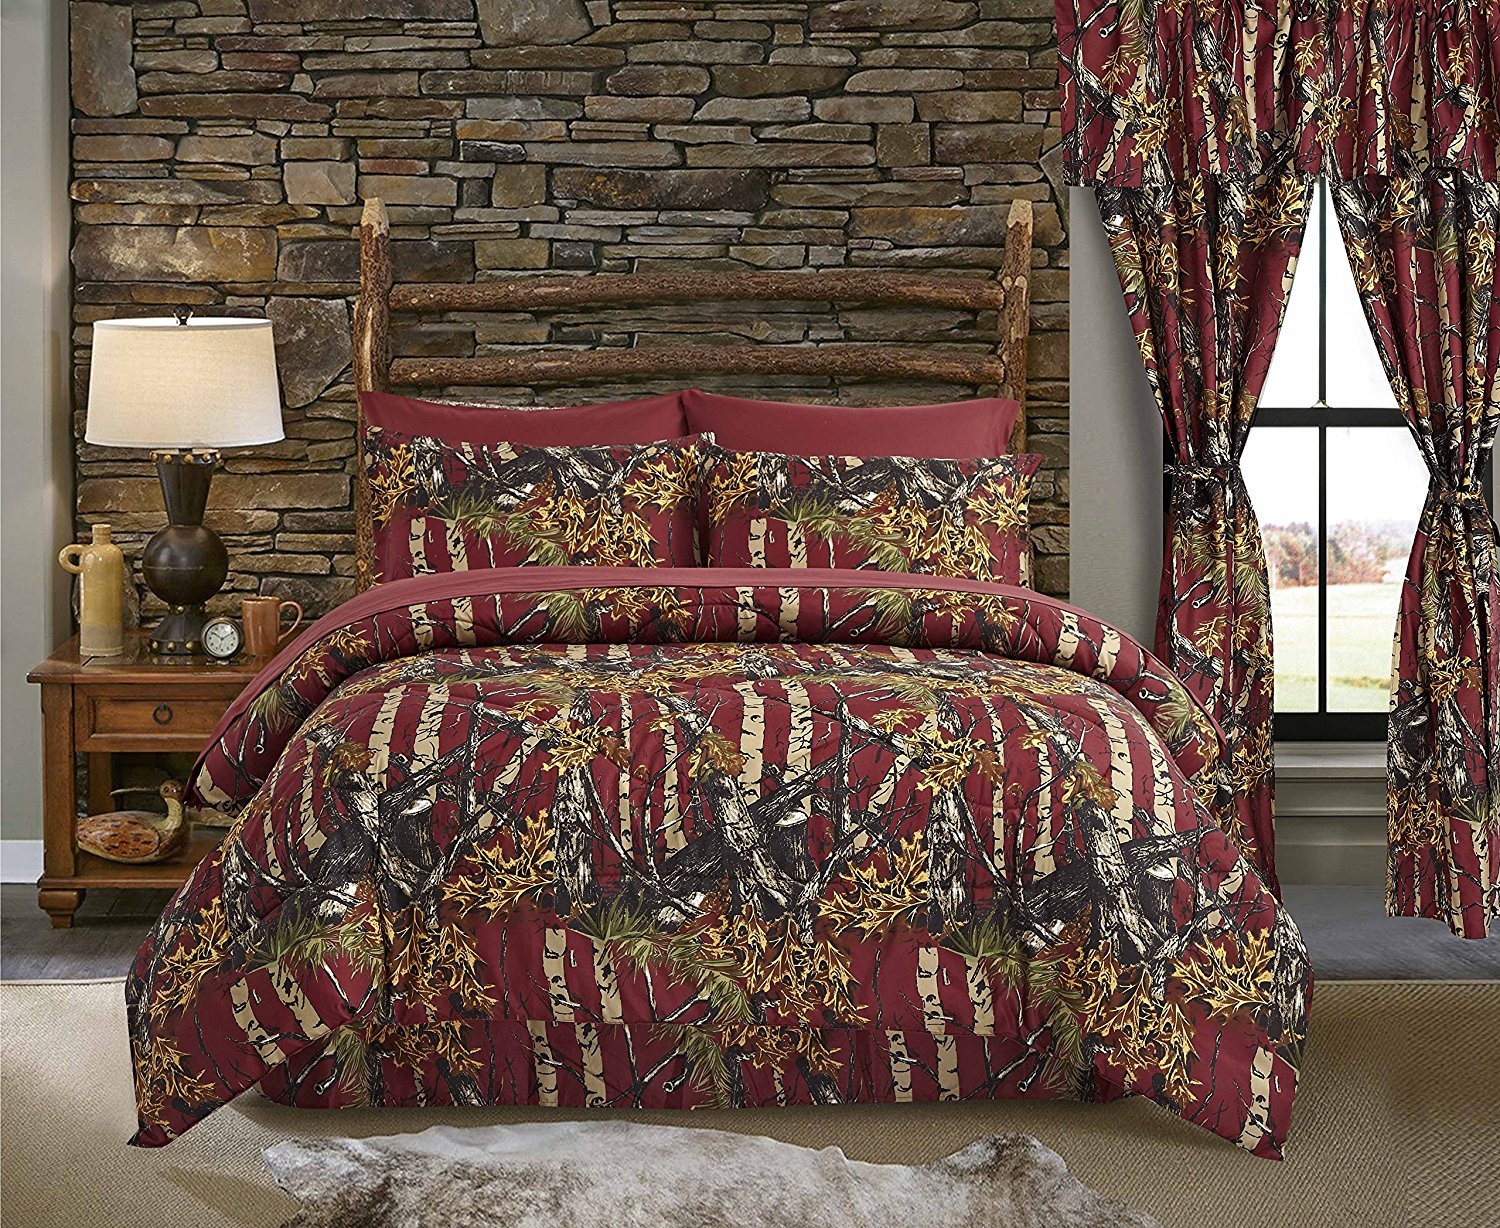 The Woods Burgundy Camouflage King 8pc Premium Luxury Comforter